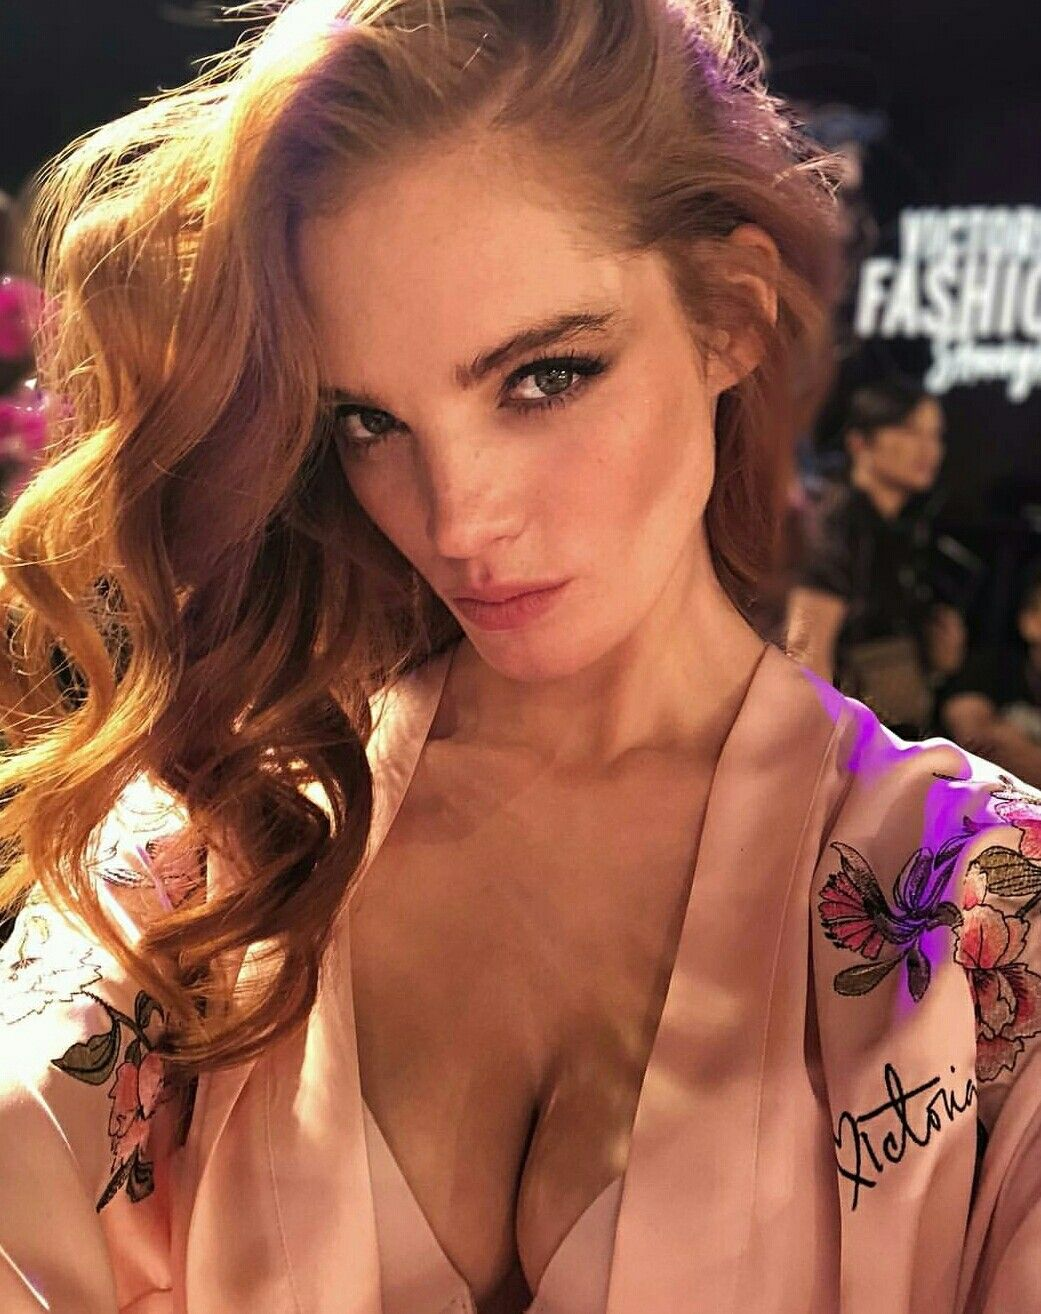 see through Is a cute Alexina Graham naked photo 2017